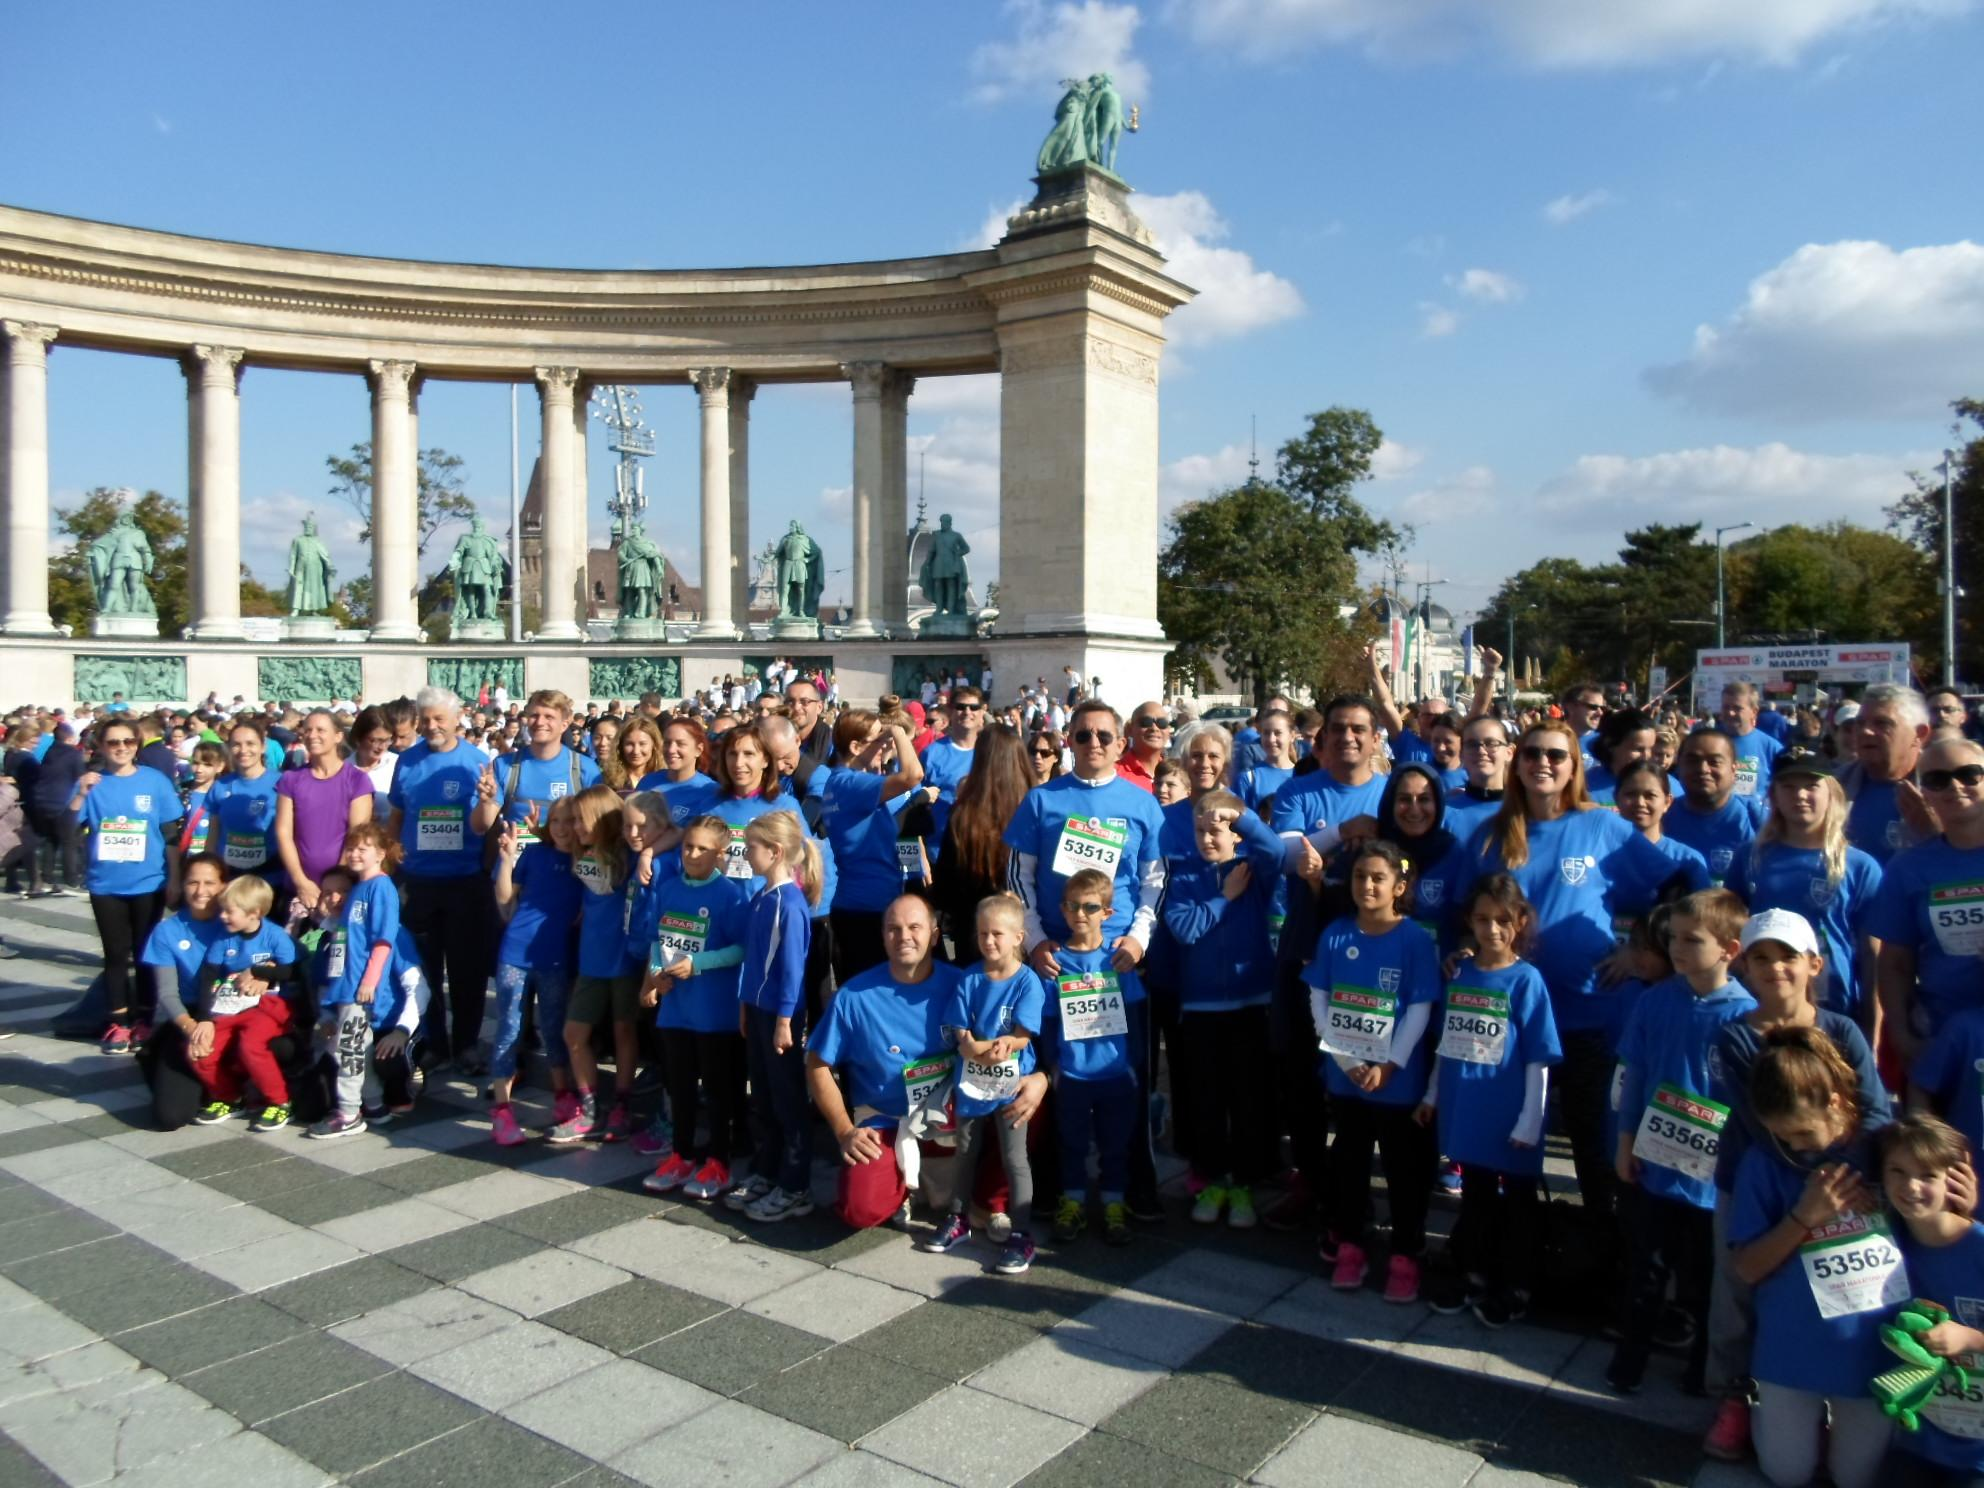 180 Charity Runners From Britannica International School At The Budapest Marathon Festival